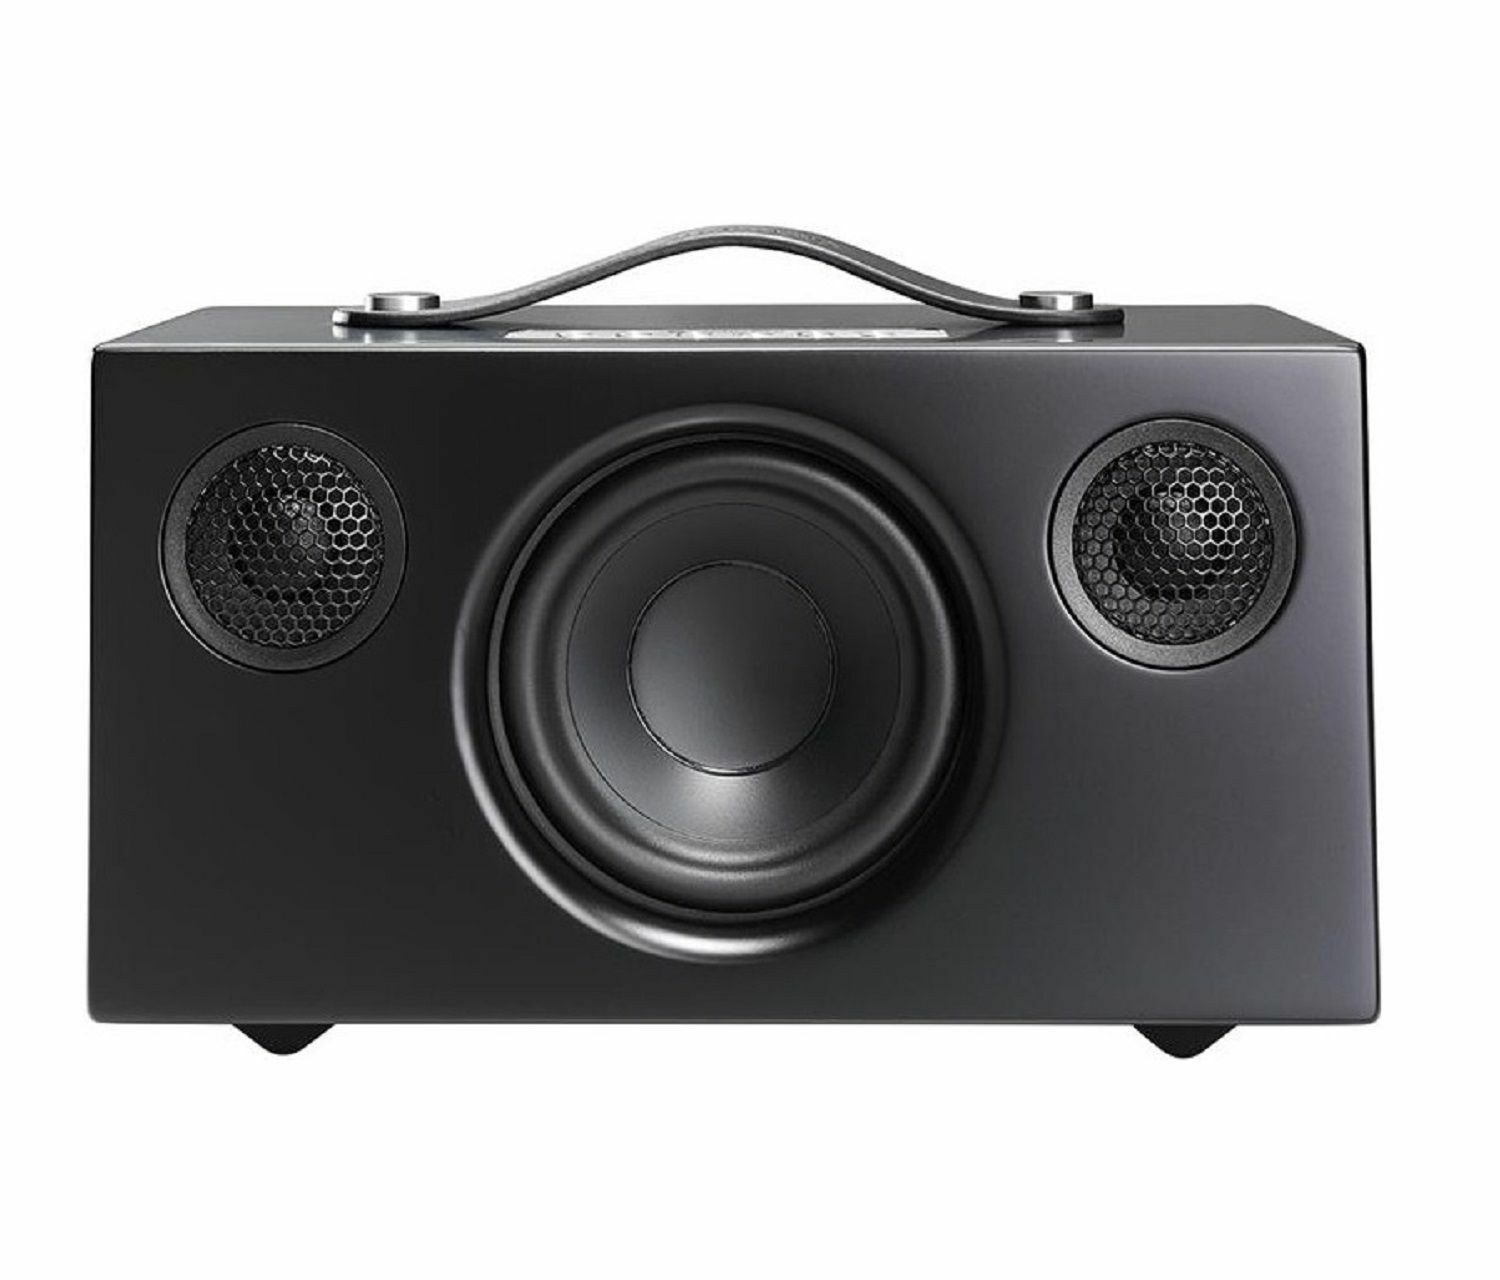 AUDIO PRO ADDON C5 BLACK ALTOPARLANTI STEREO, AIRPLAY, BLUETOOTH, WI-FI GARANZIA